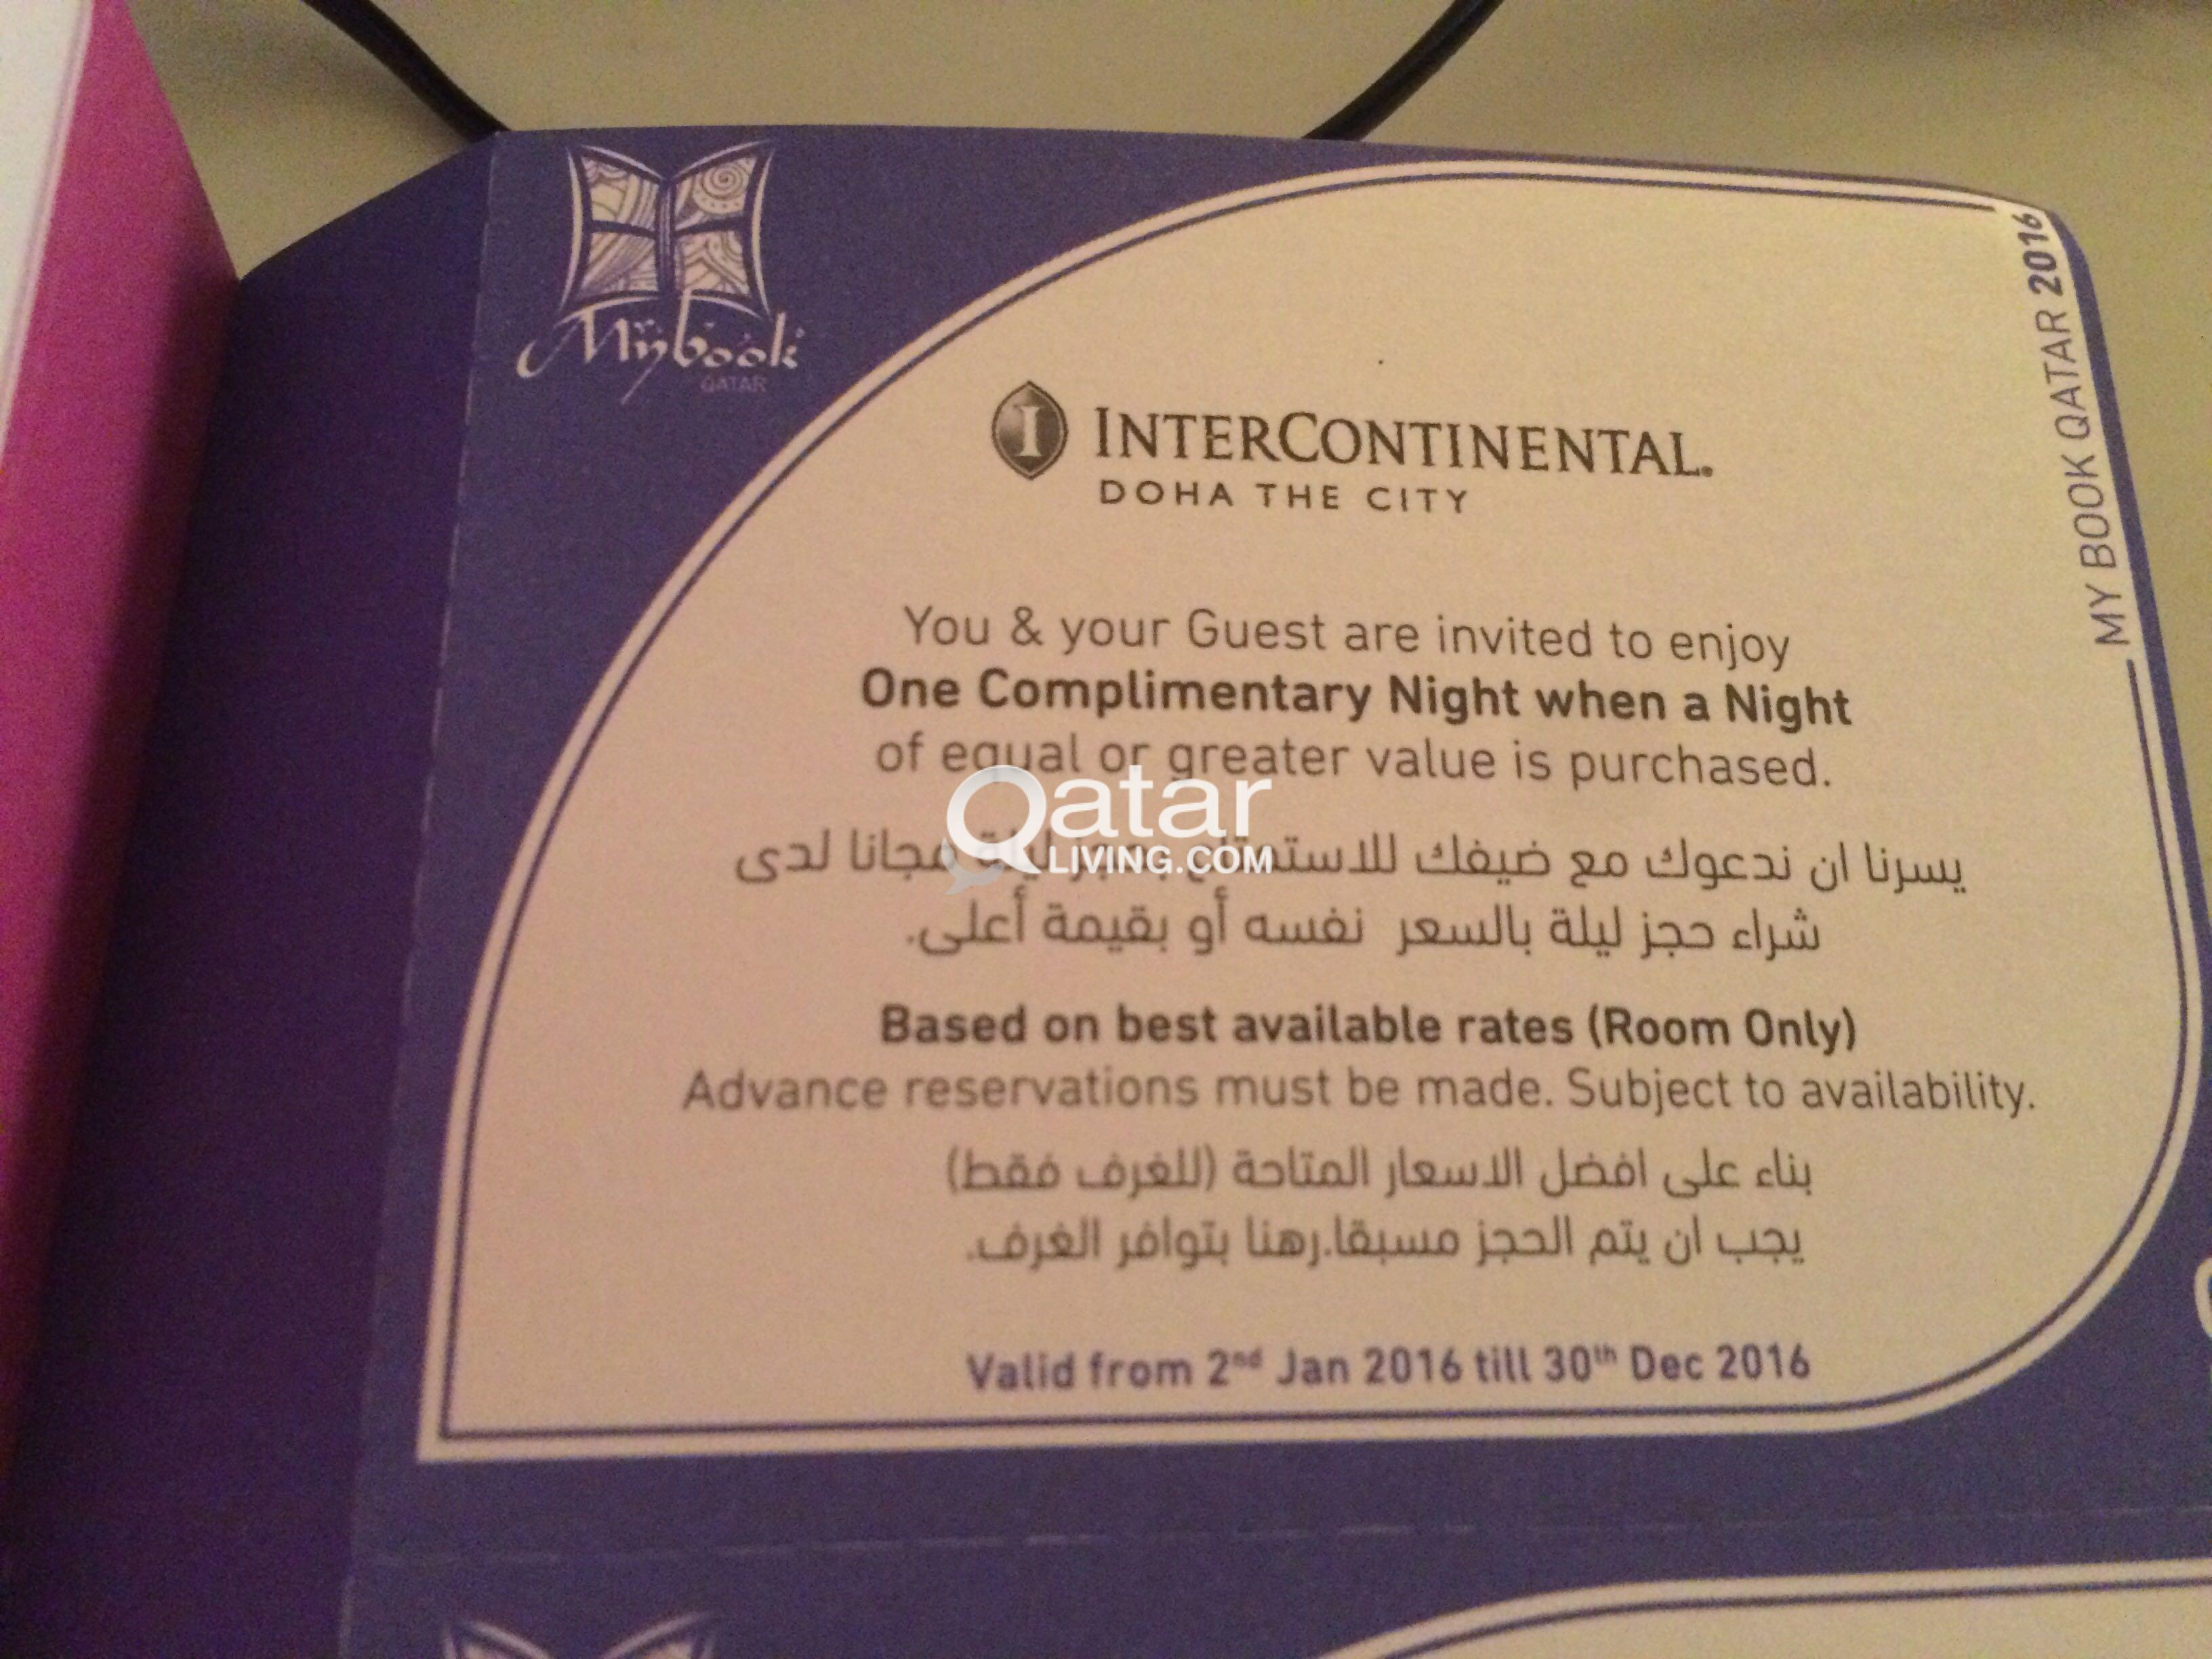 Hotel vouchers get 1 night free | Qatar Living